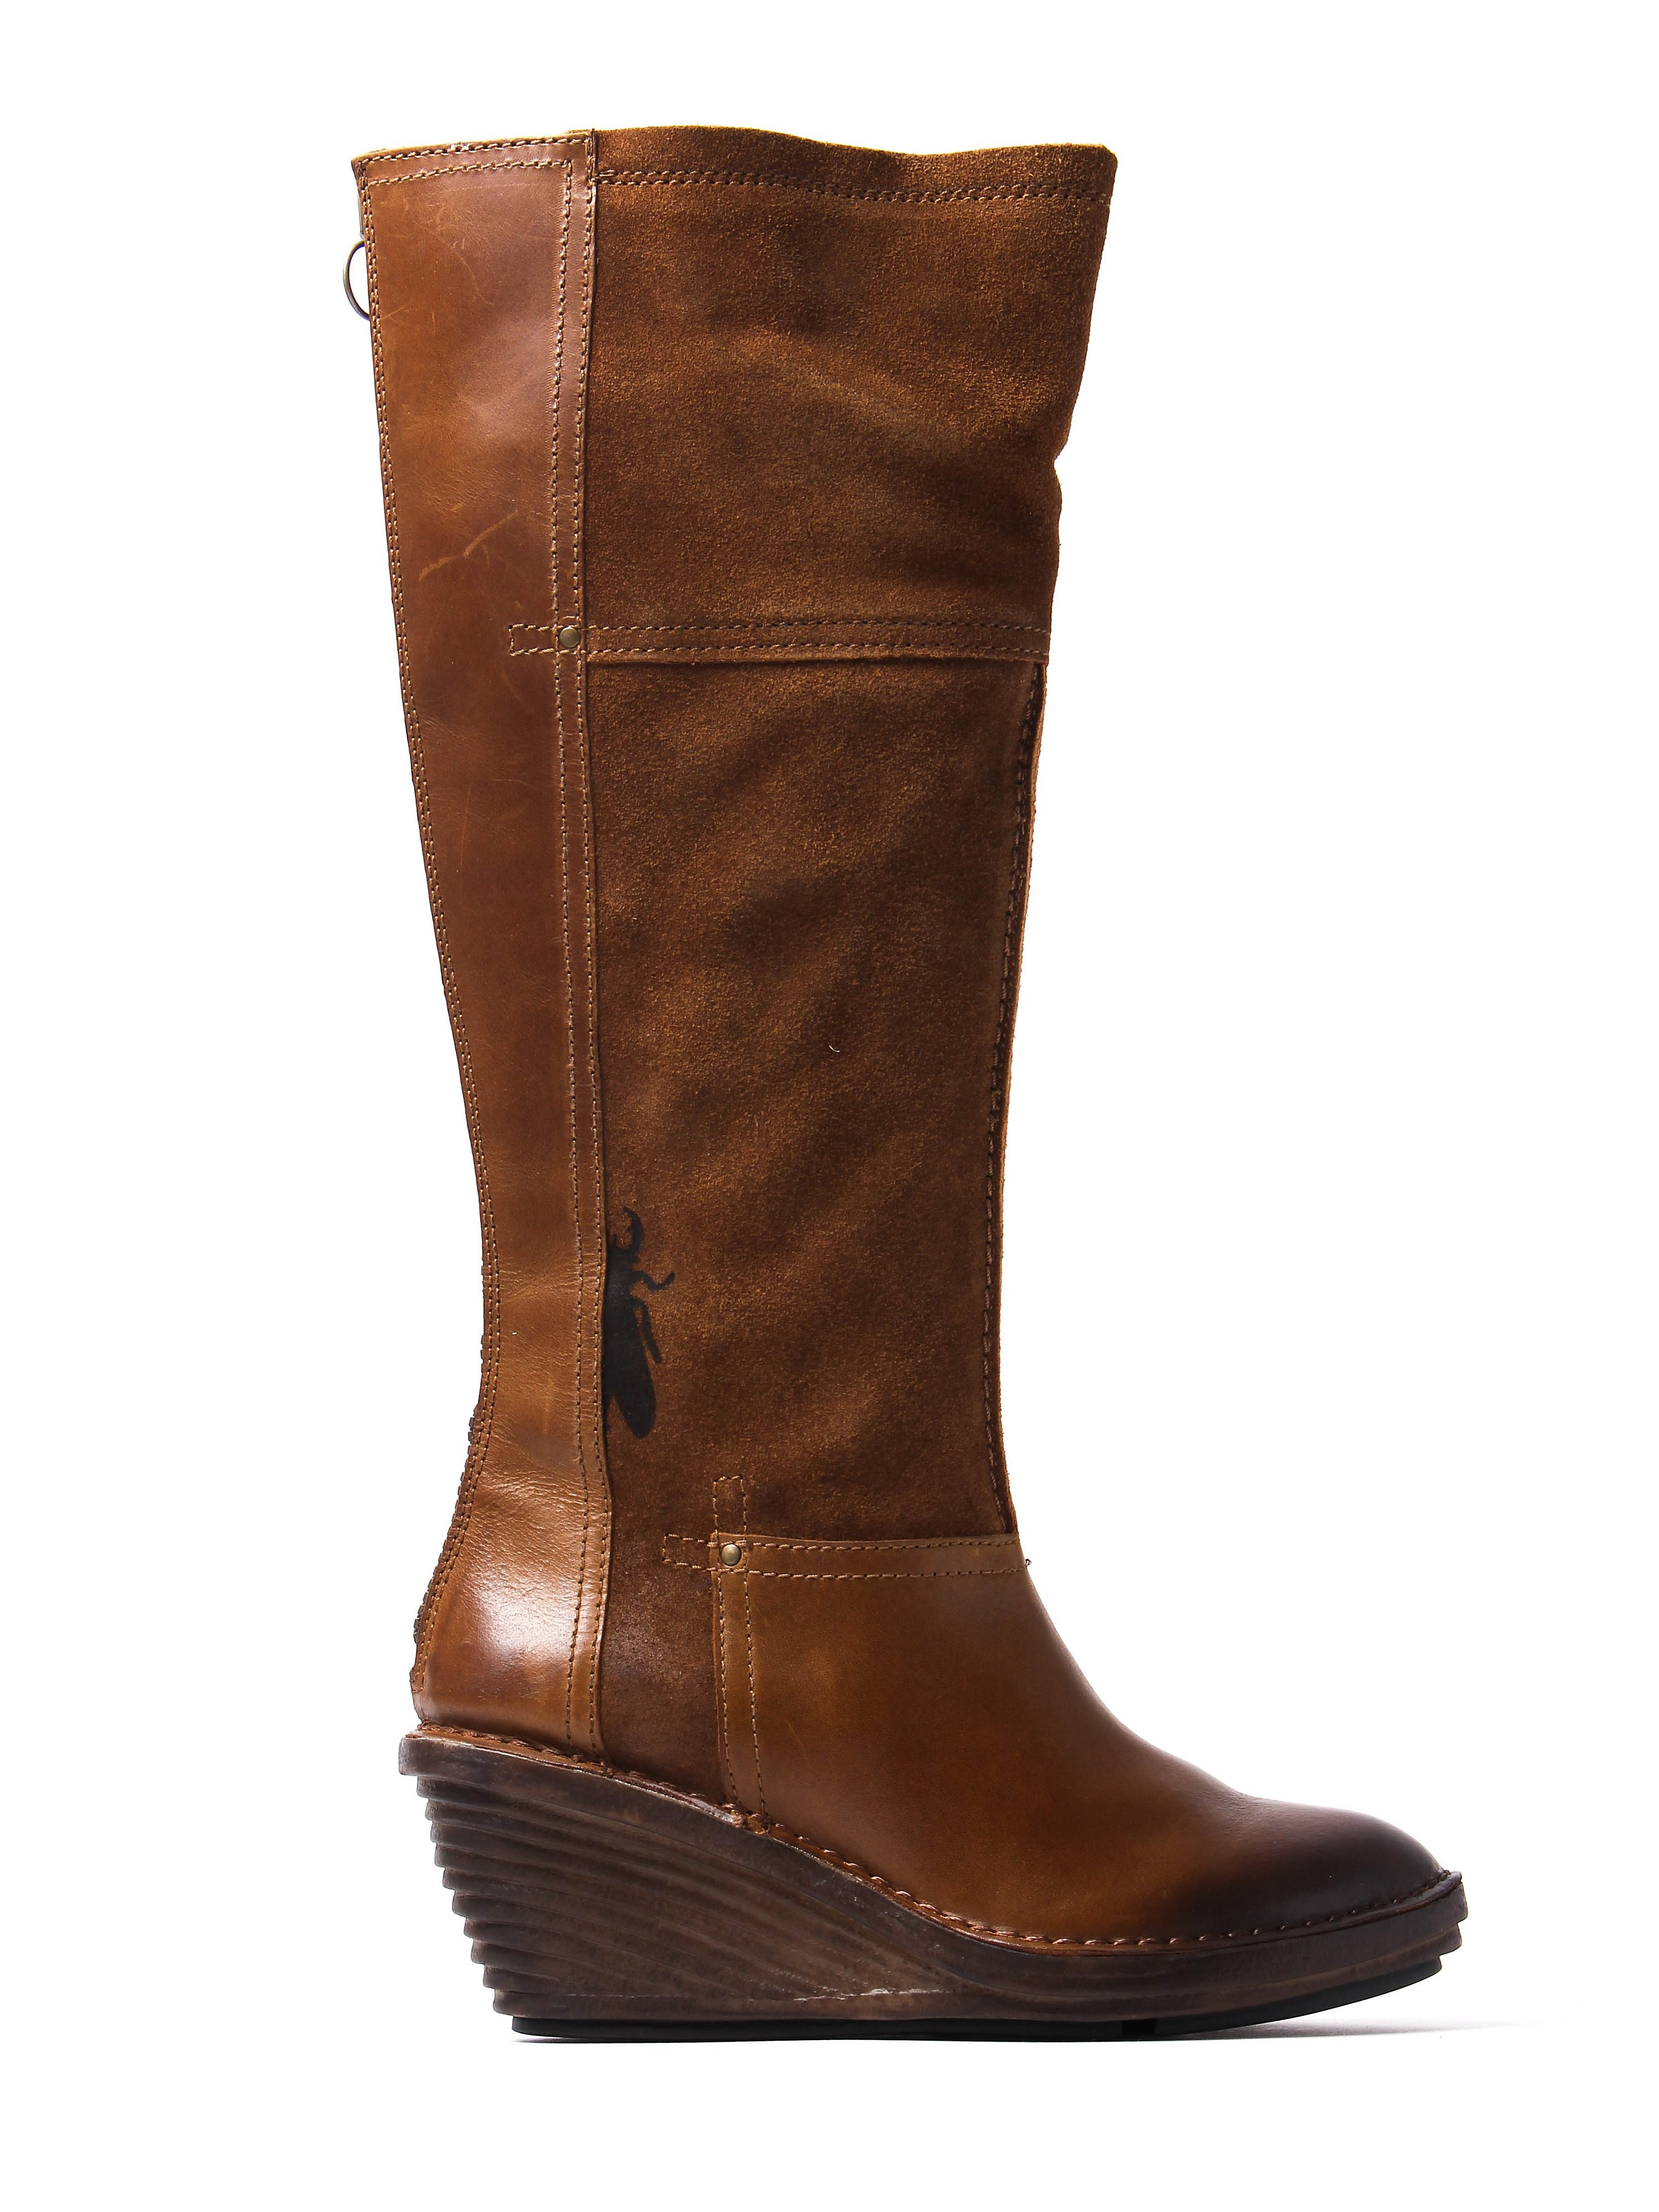 Fly London Women's Seda Tall Boots - Camel Suede